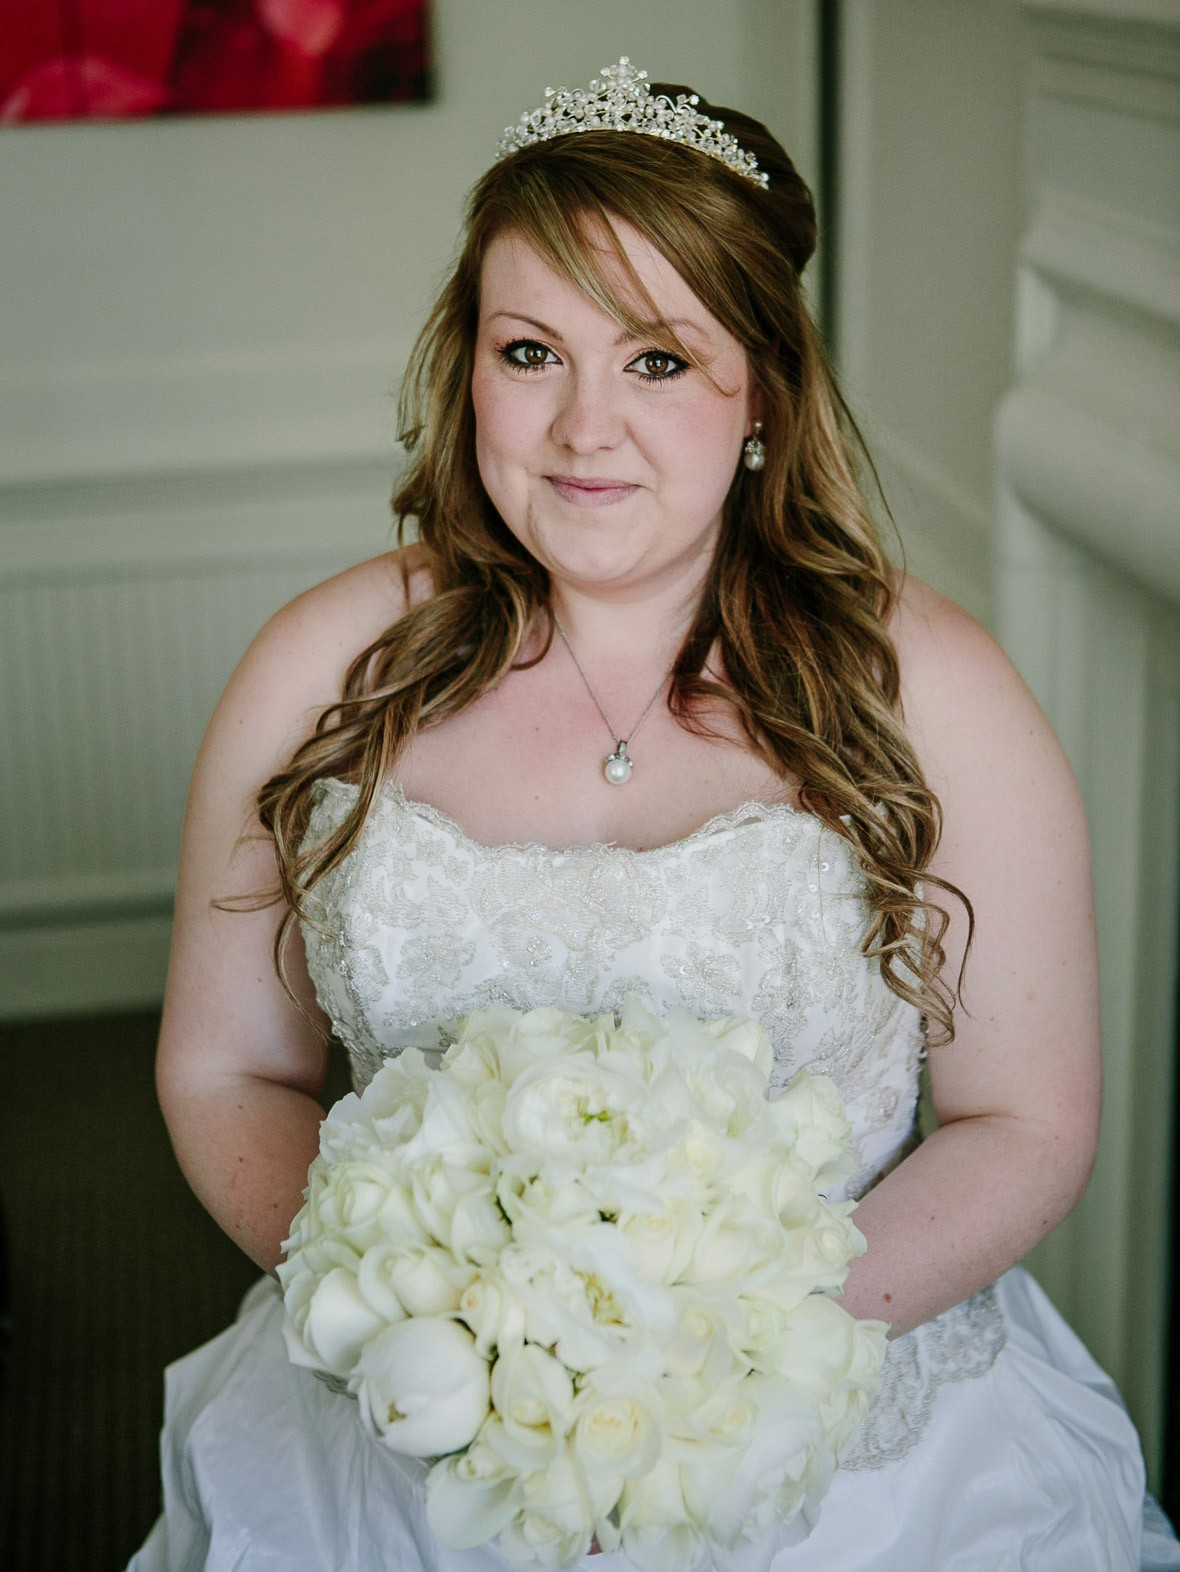 Mosborough-hall hotel-weddings-176